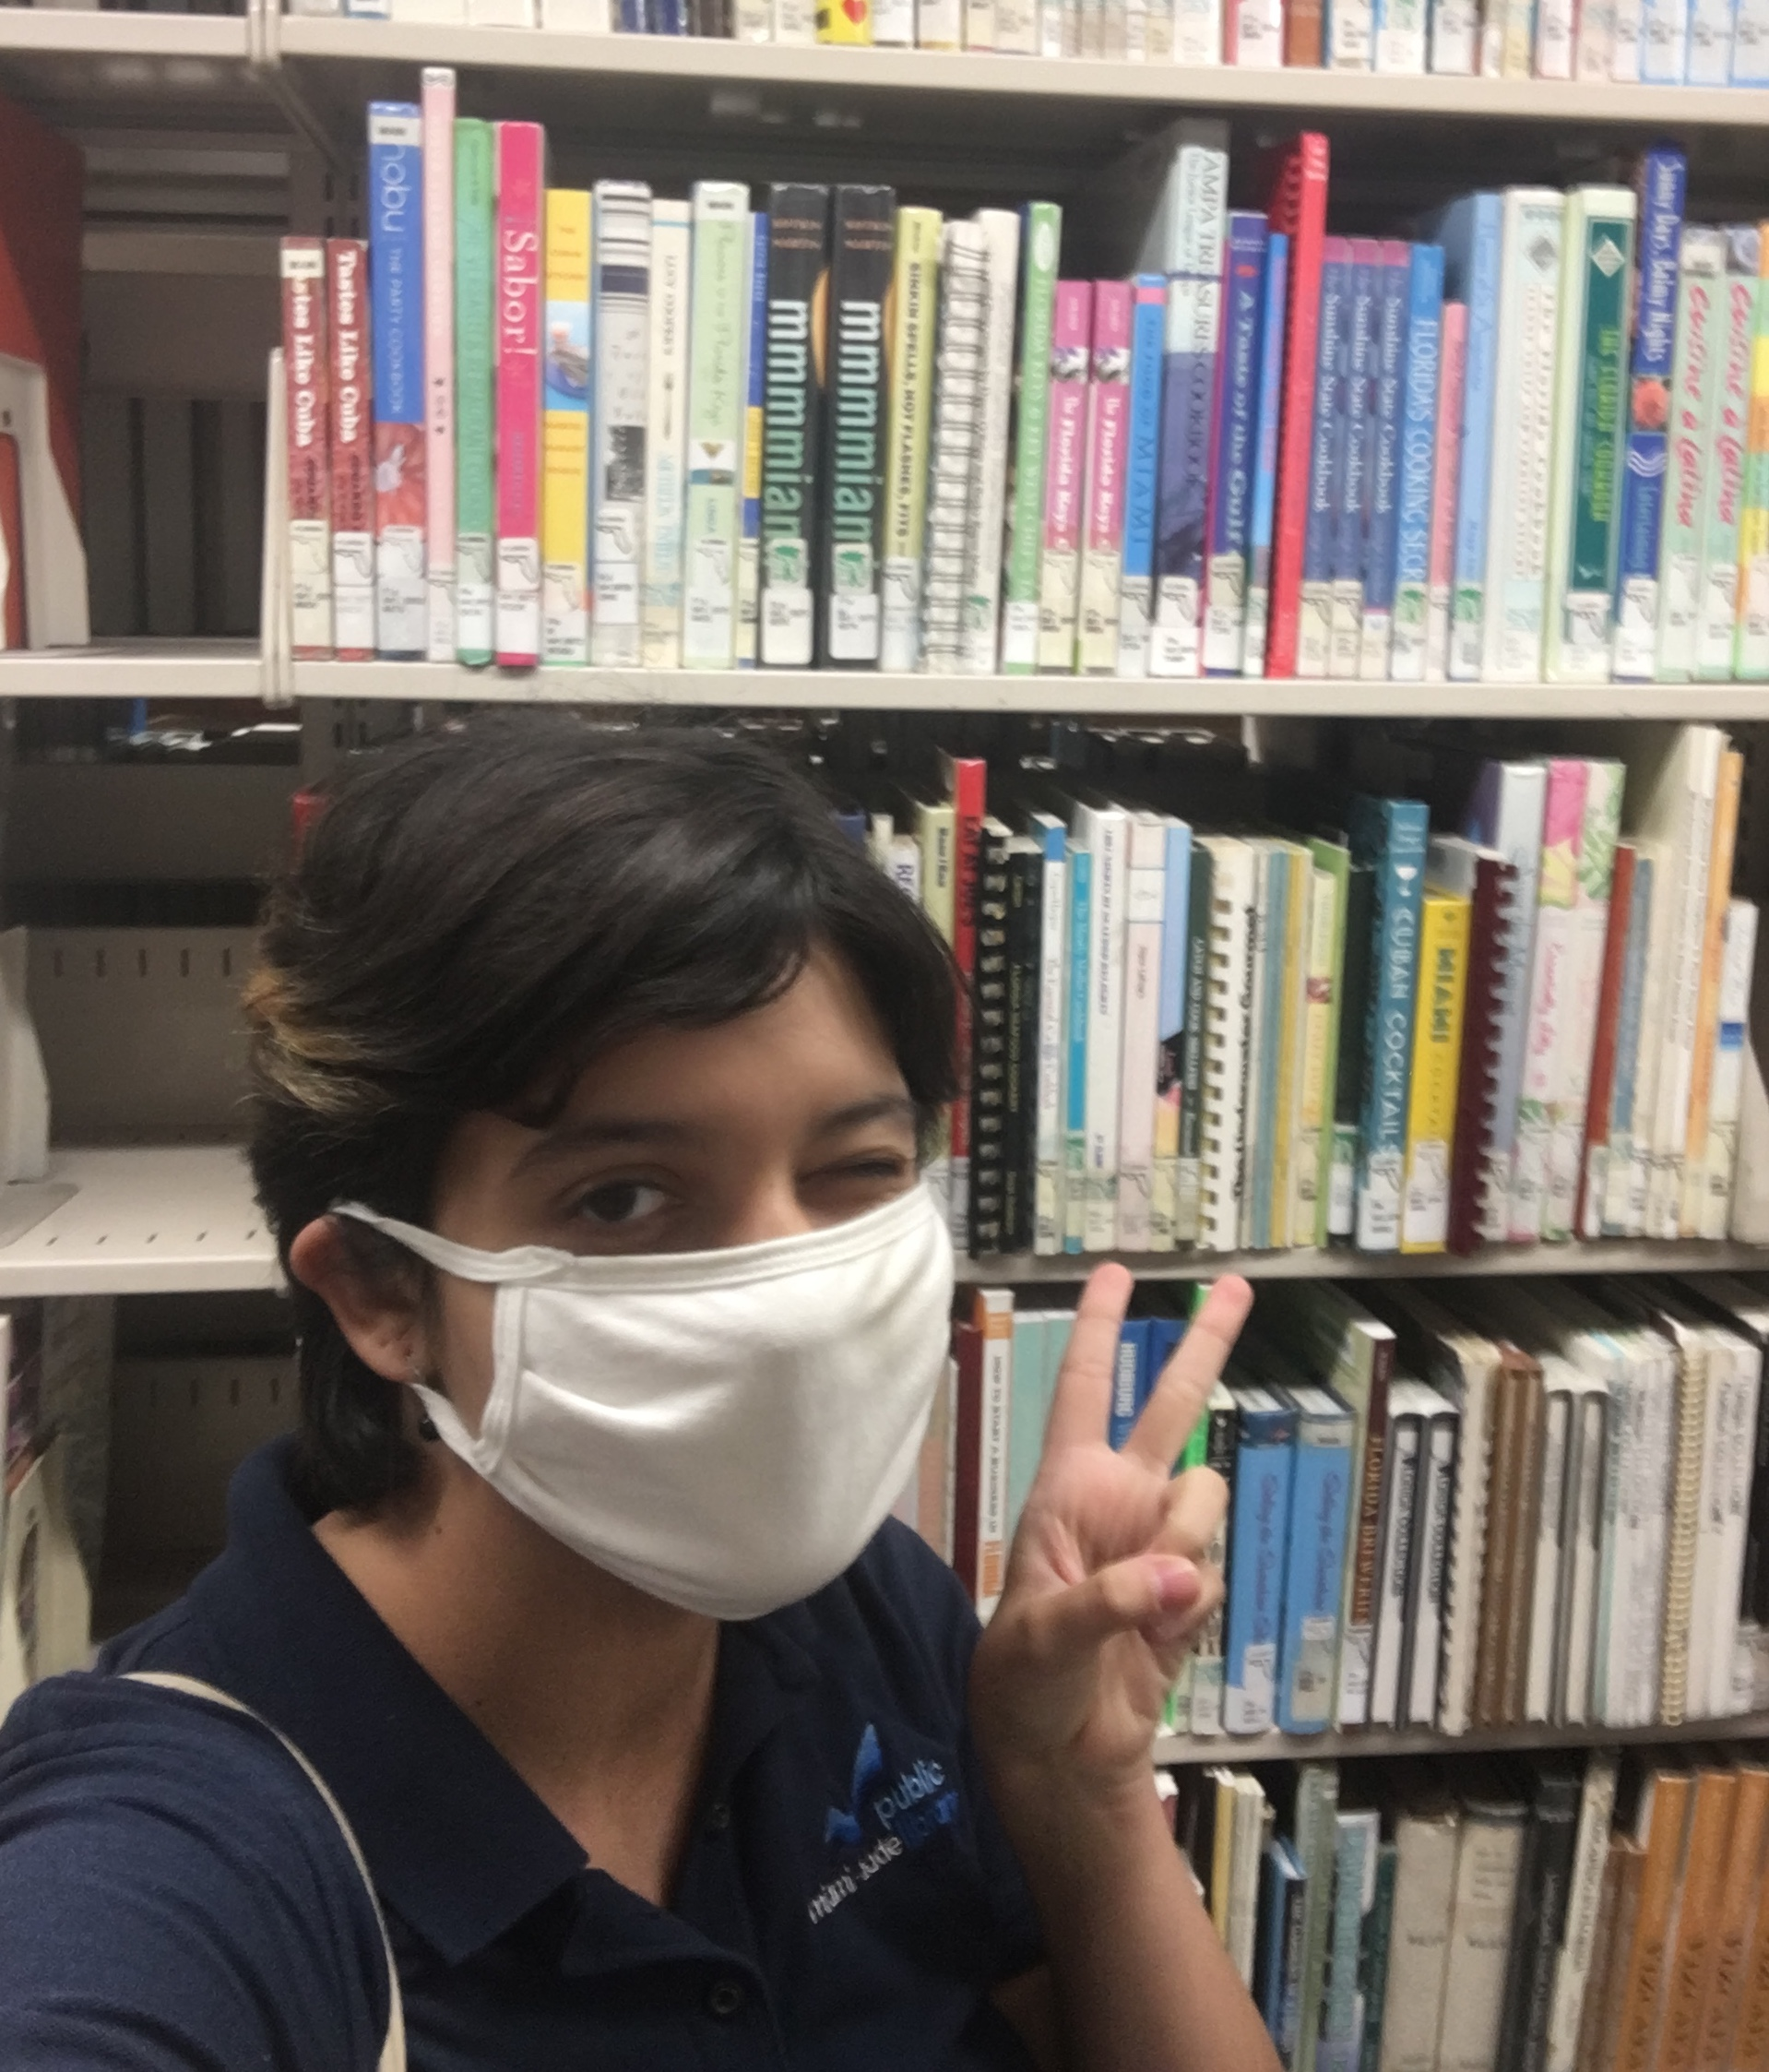 photo of person in a white mask in front of a bookshelf holding hand in a peace sign and winking